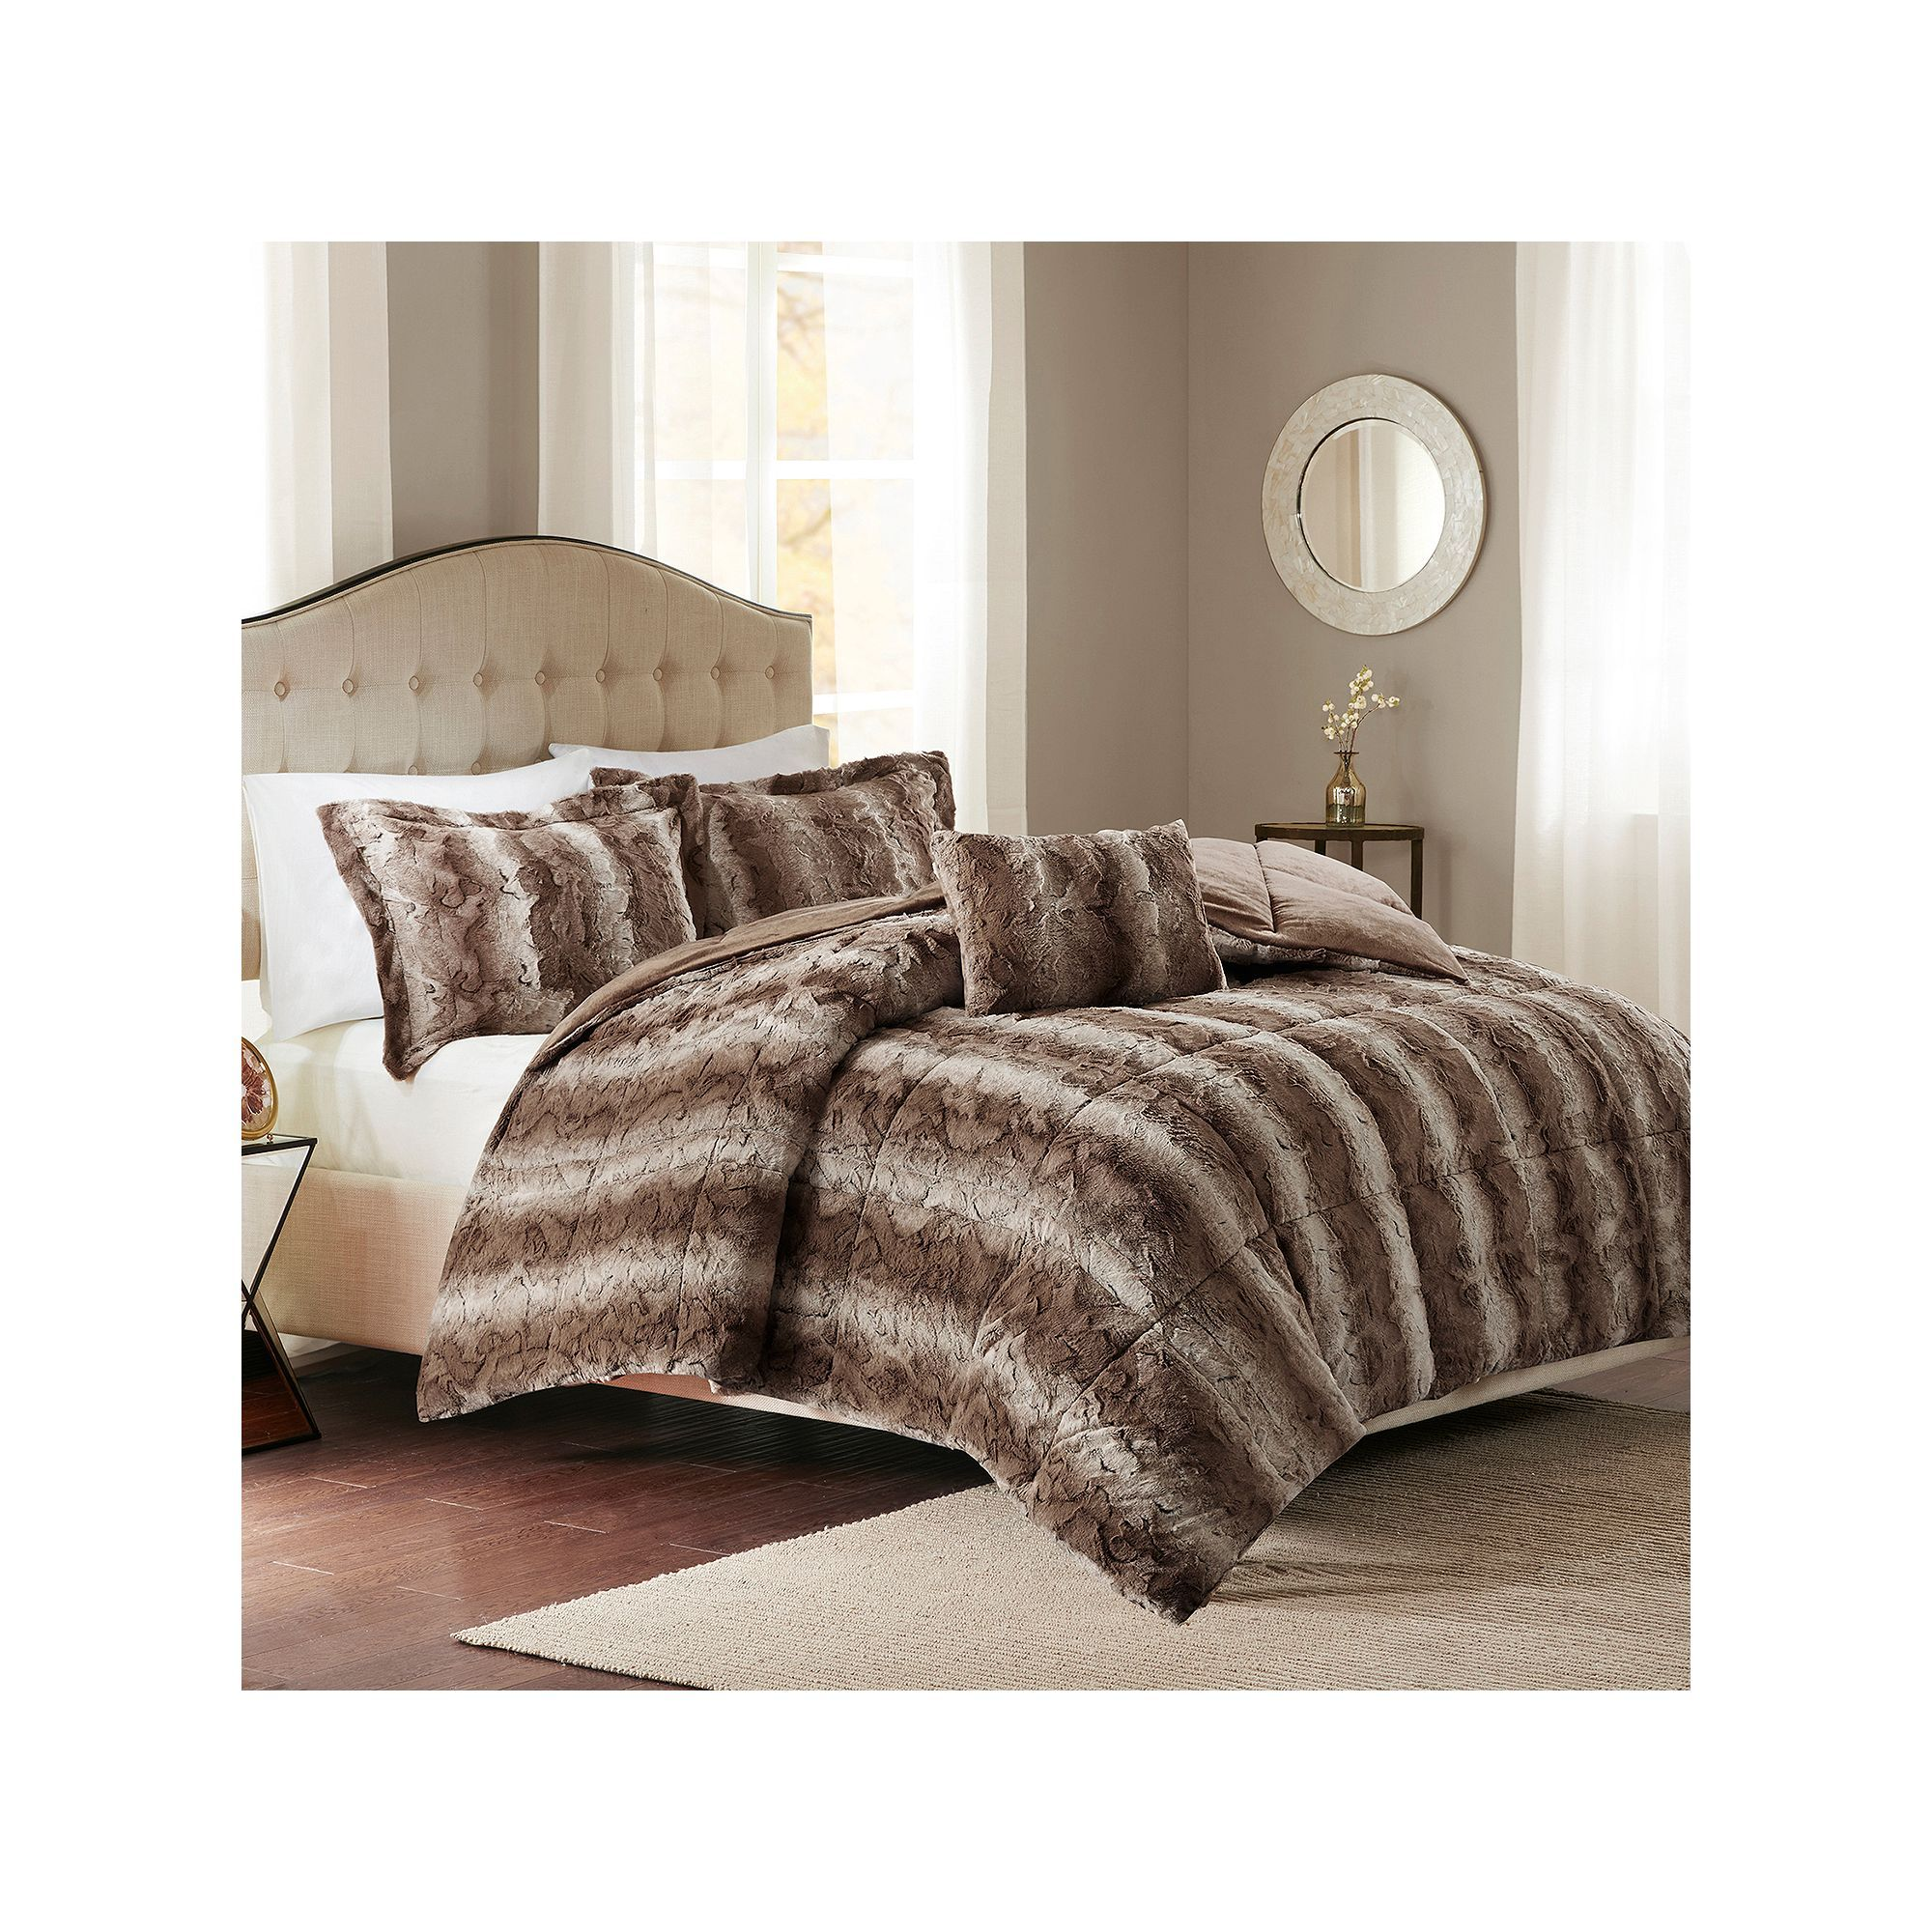 free queen piece fur chic product comforter caimani faux beige bedding bath home overstock today shipping set